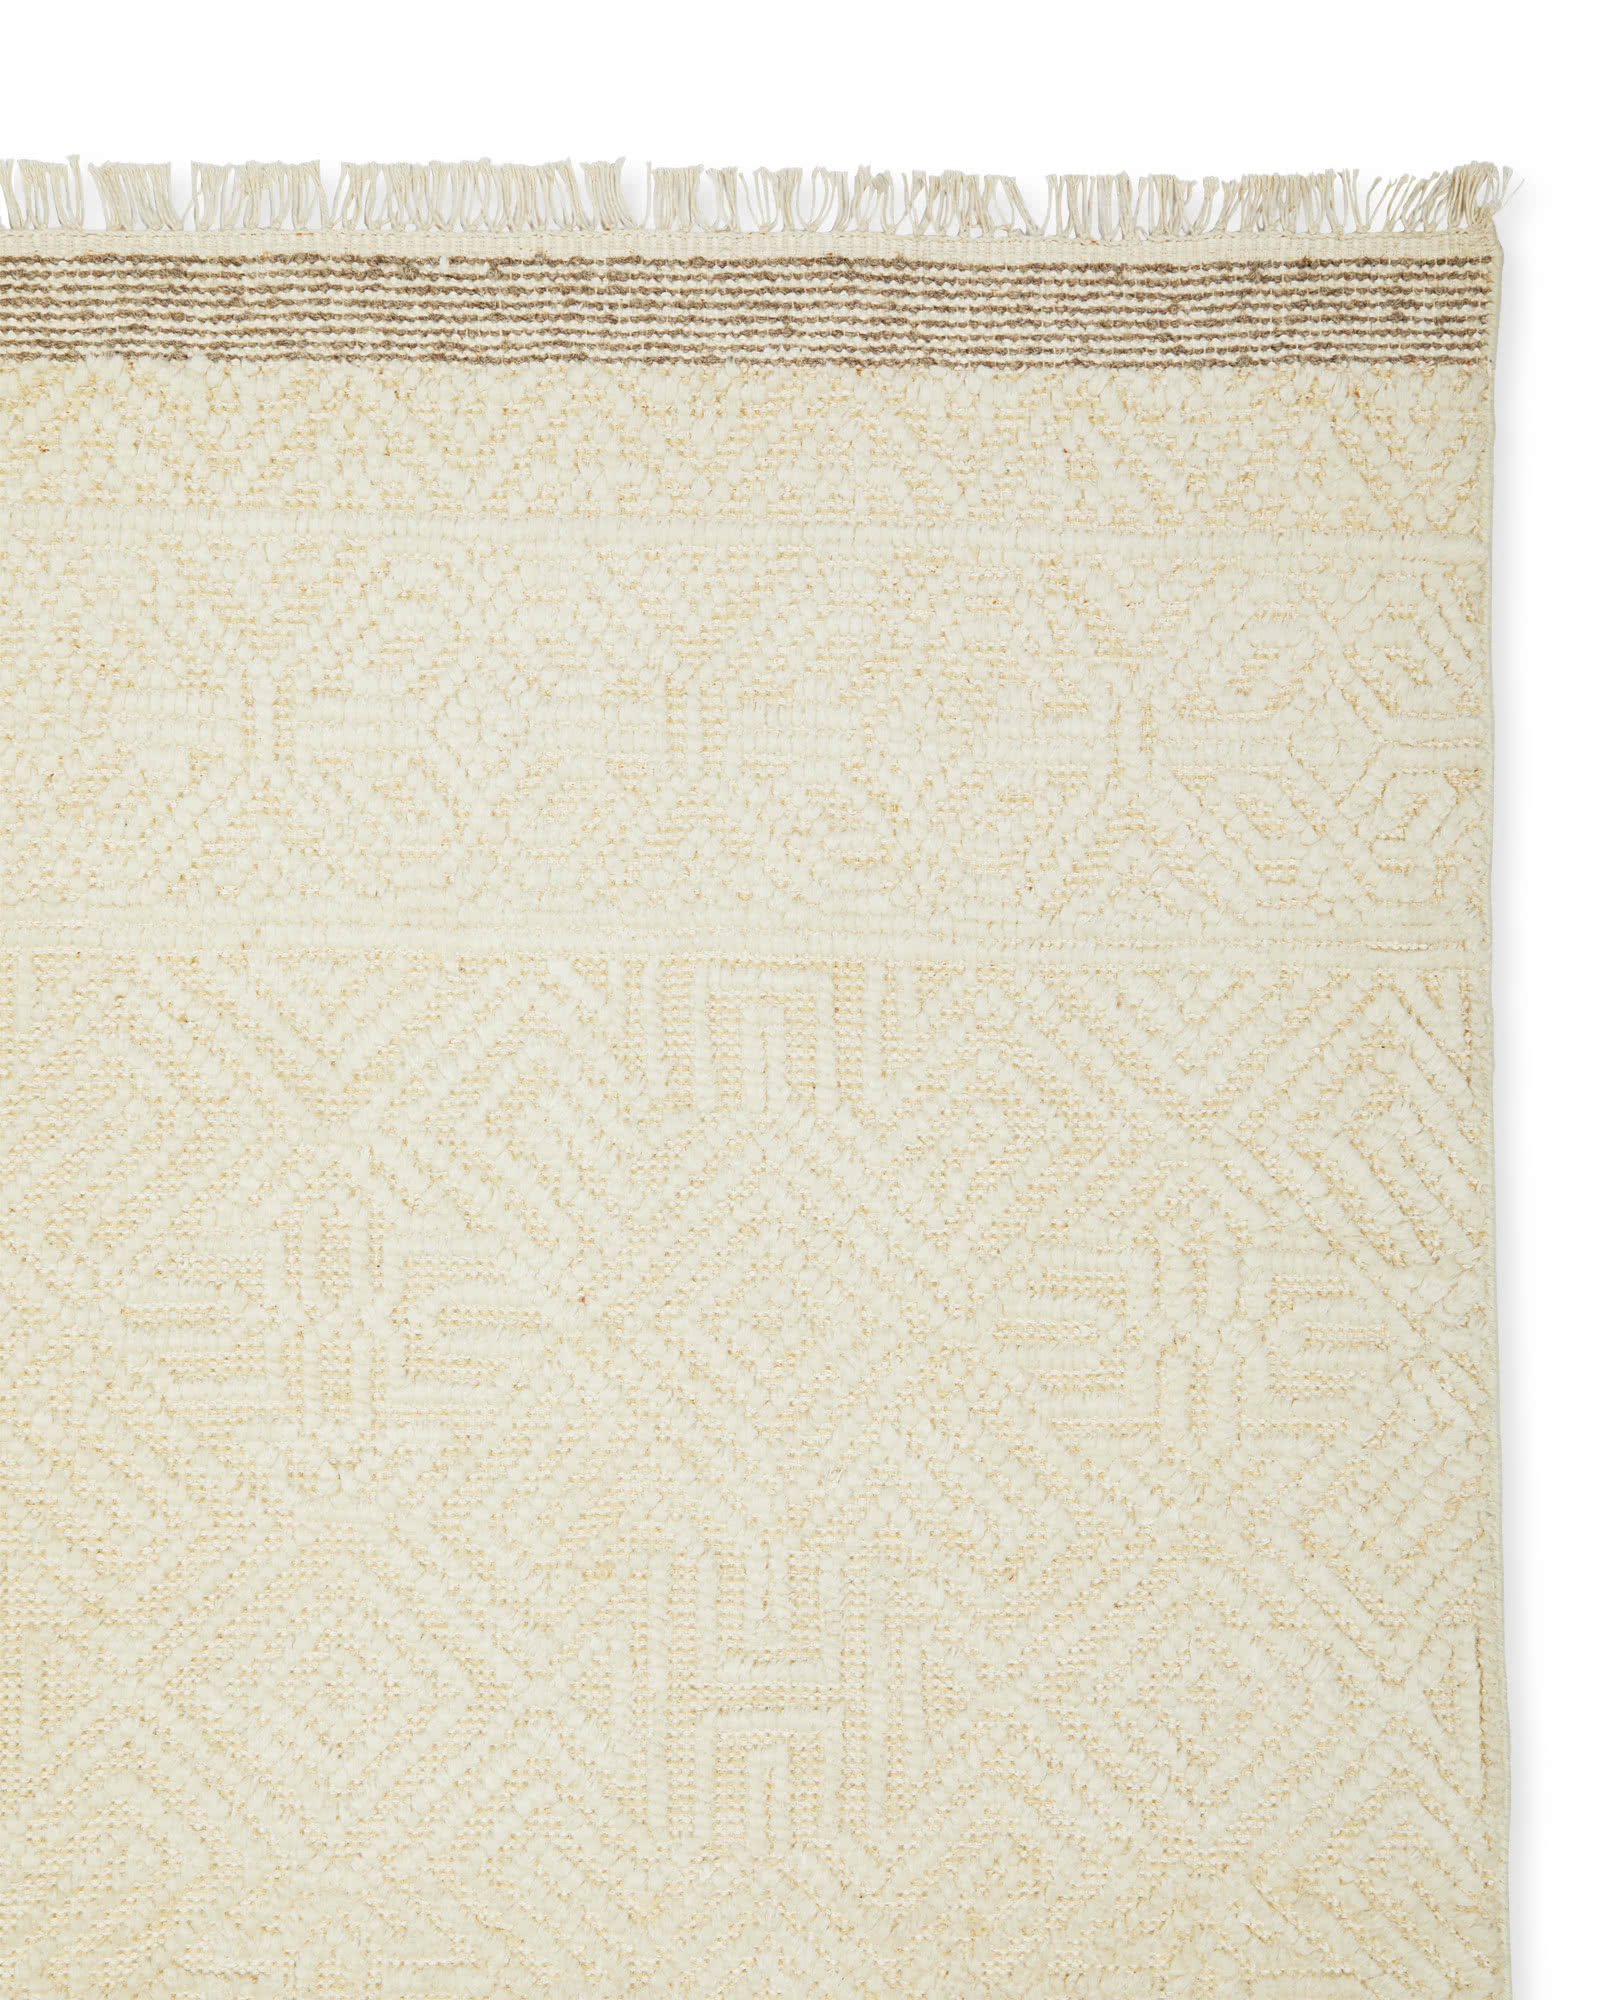 Satterlee Hand-Knotted Rug Swatch,